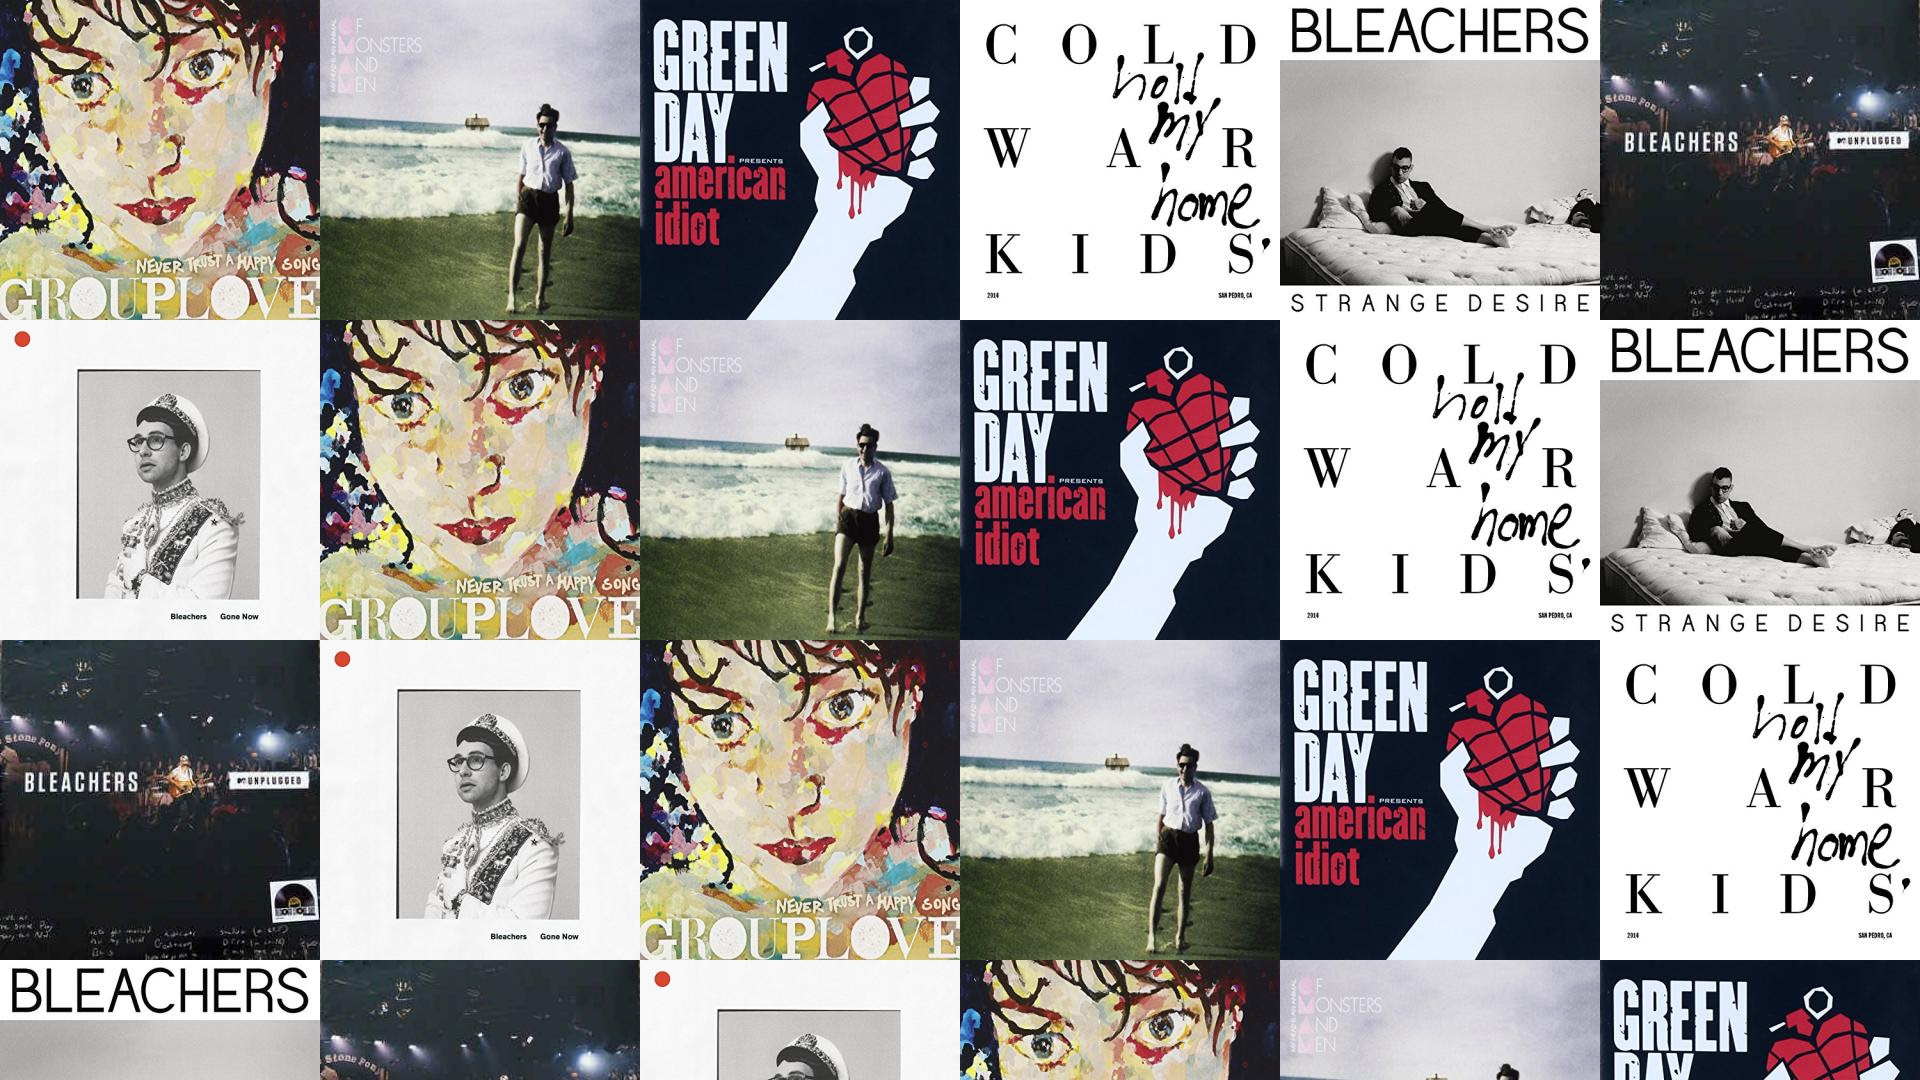 Grouplove Never Trust A Happy Song Of Monsters Wallpaper Tiled